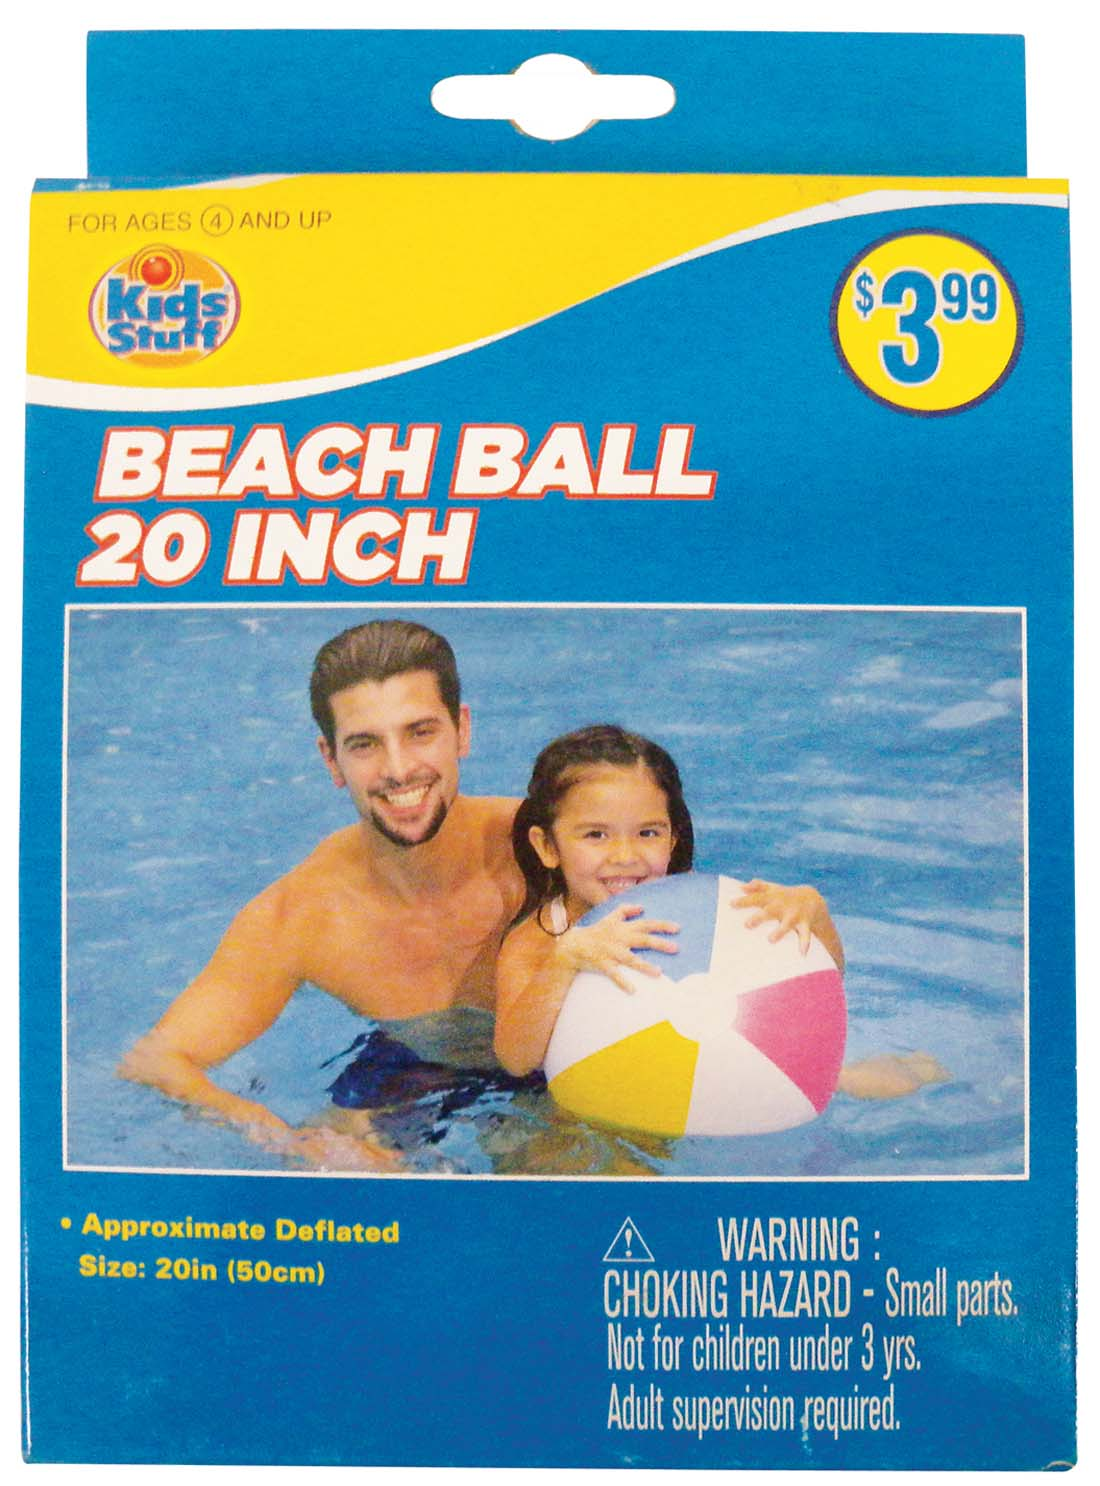 View BEACH BALL 20 INCH ASSORTED COLORS AGES 4+ PREPRICED $3.99